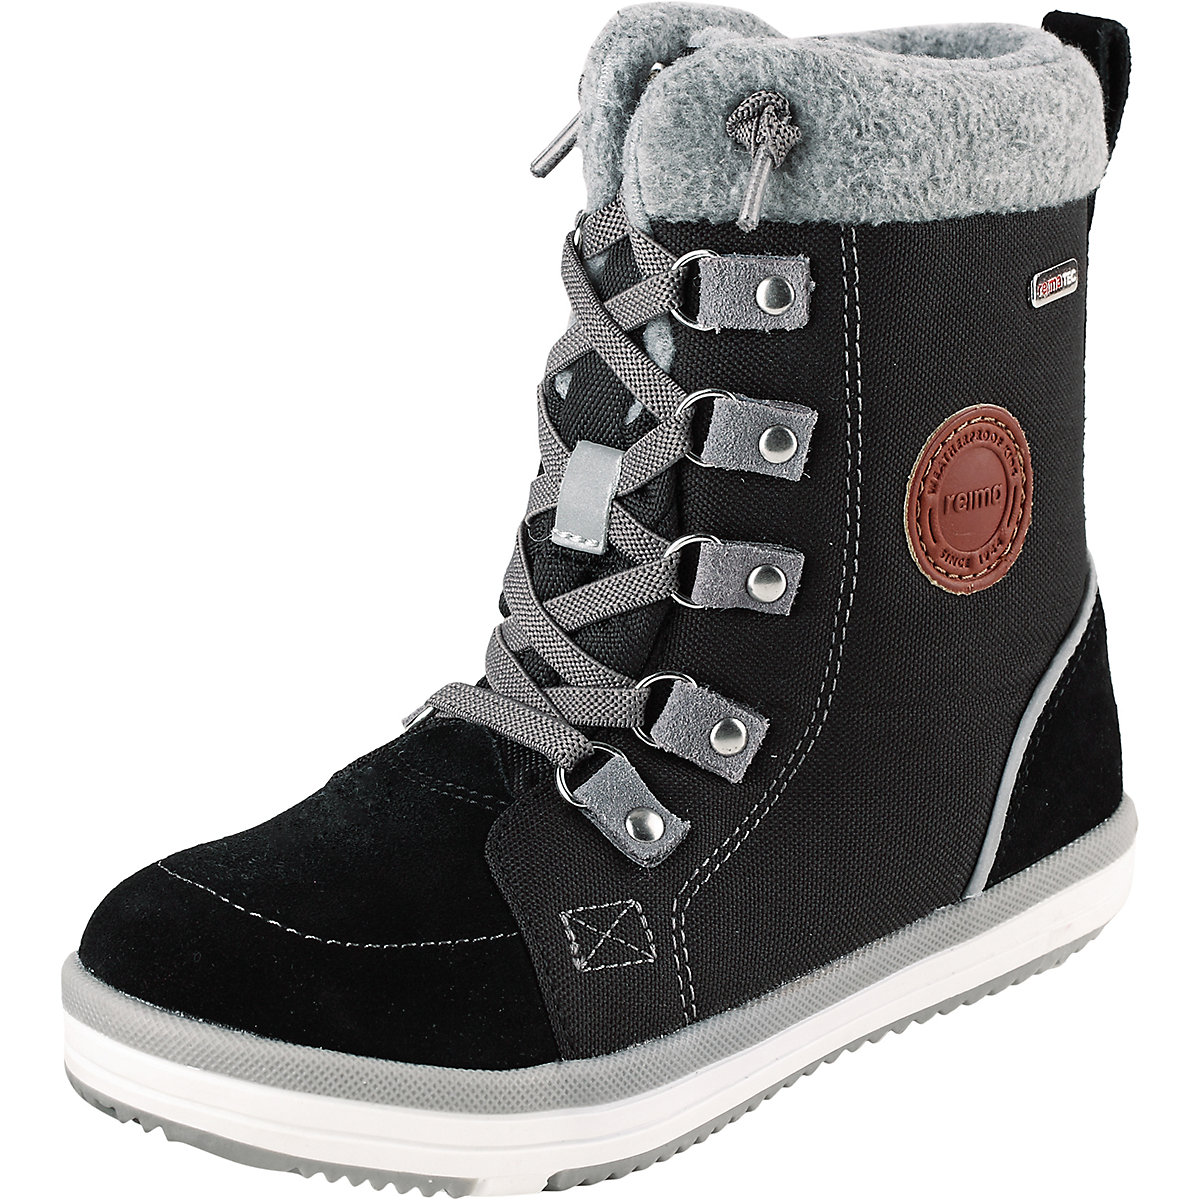 REIMA Boots 8624755 for boys winter boy baby shoes child snow boots male shoes plus velvet child girls big boy baby winter boots ankle boots 2016 winter